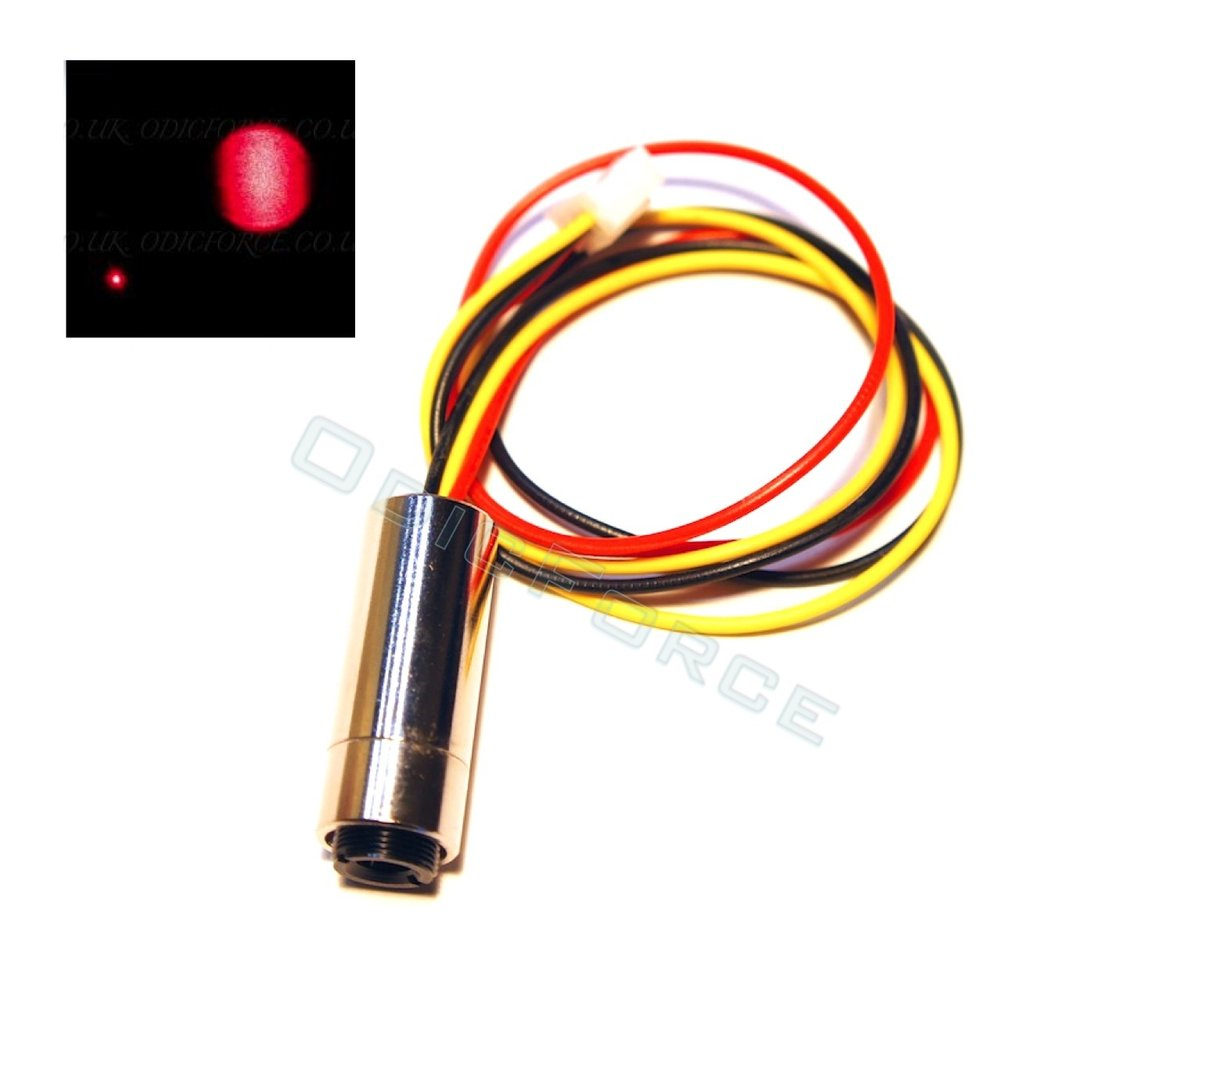 30mW Focusing Red (650nm) Laser Module (12mm) with TTL Driver Class 3R